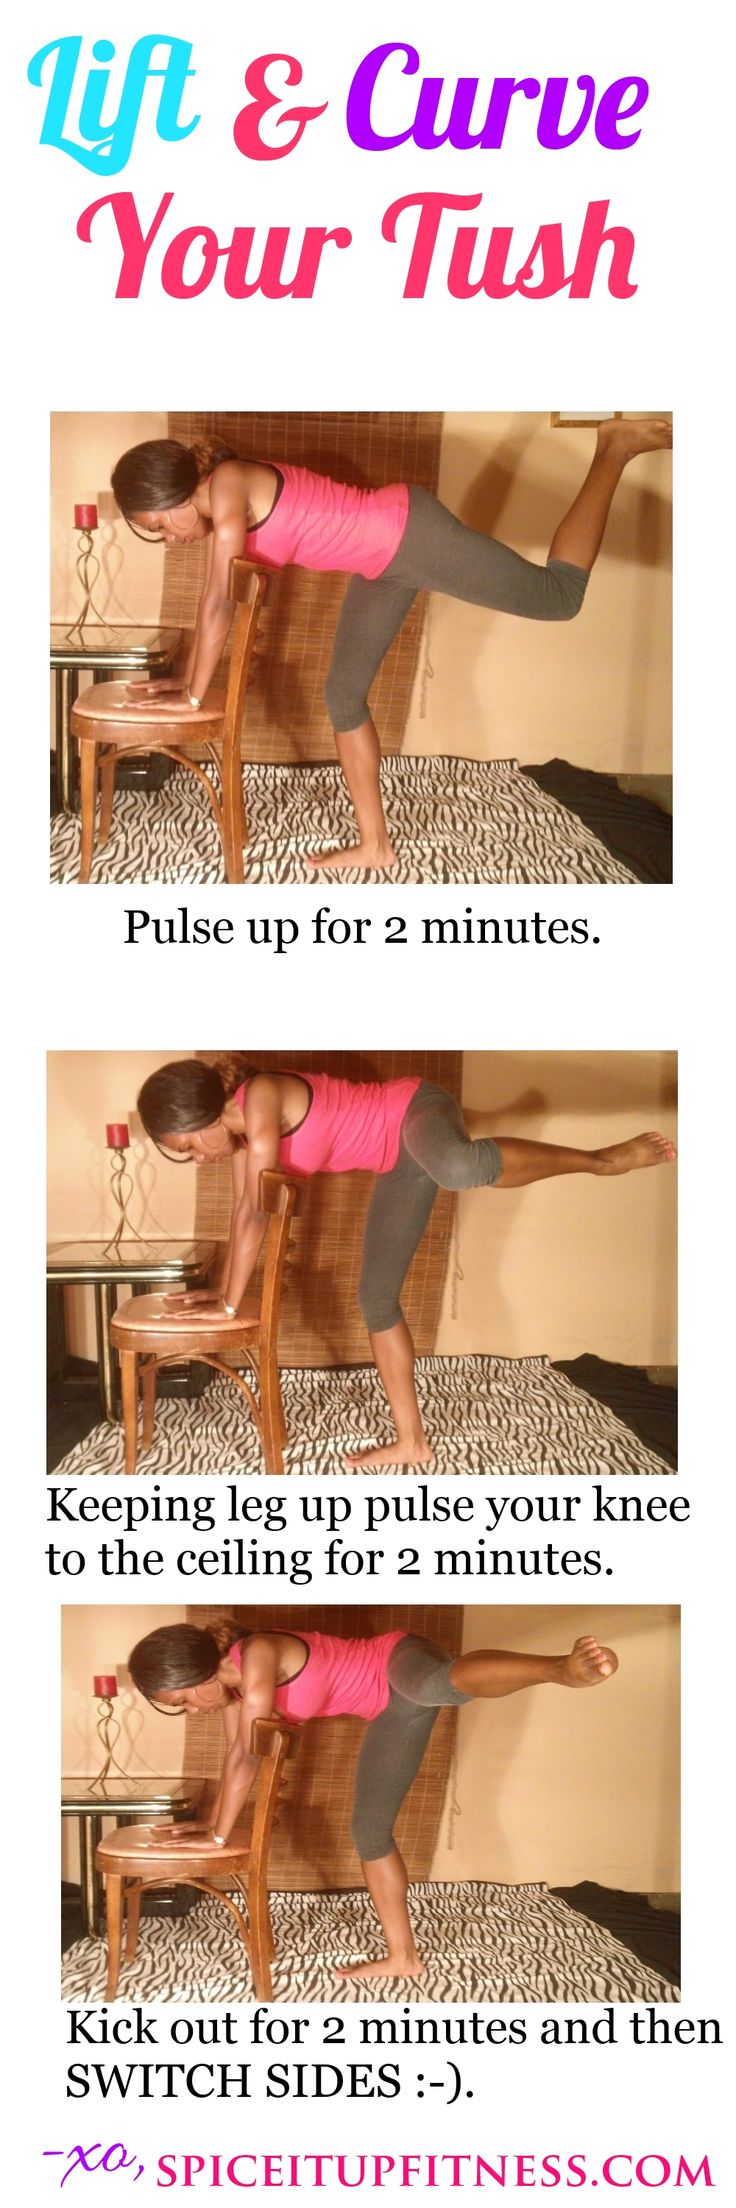 Great exercise routine for sculpting those glutes!  #howtogetabiggerbutt #sexinessisearned #homebootyworkouts